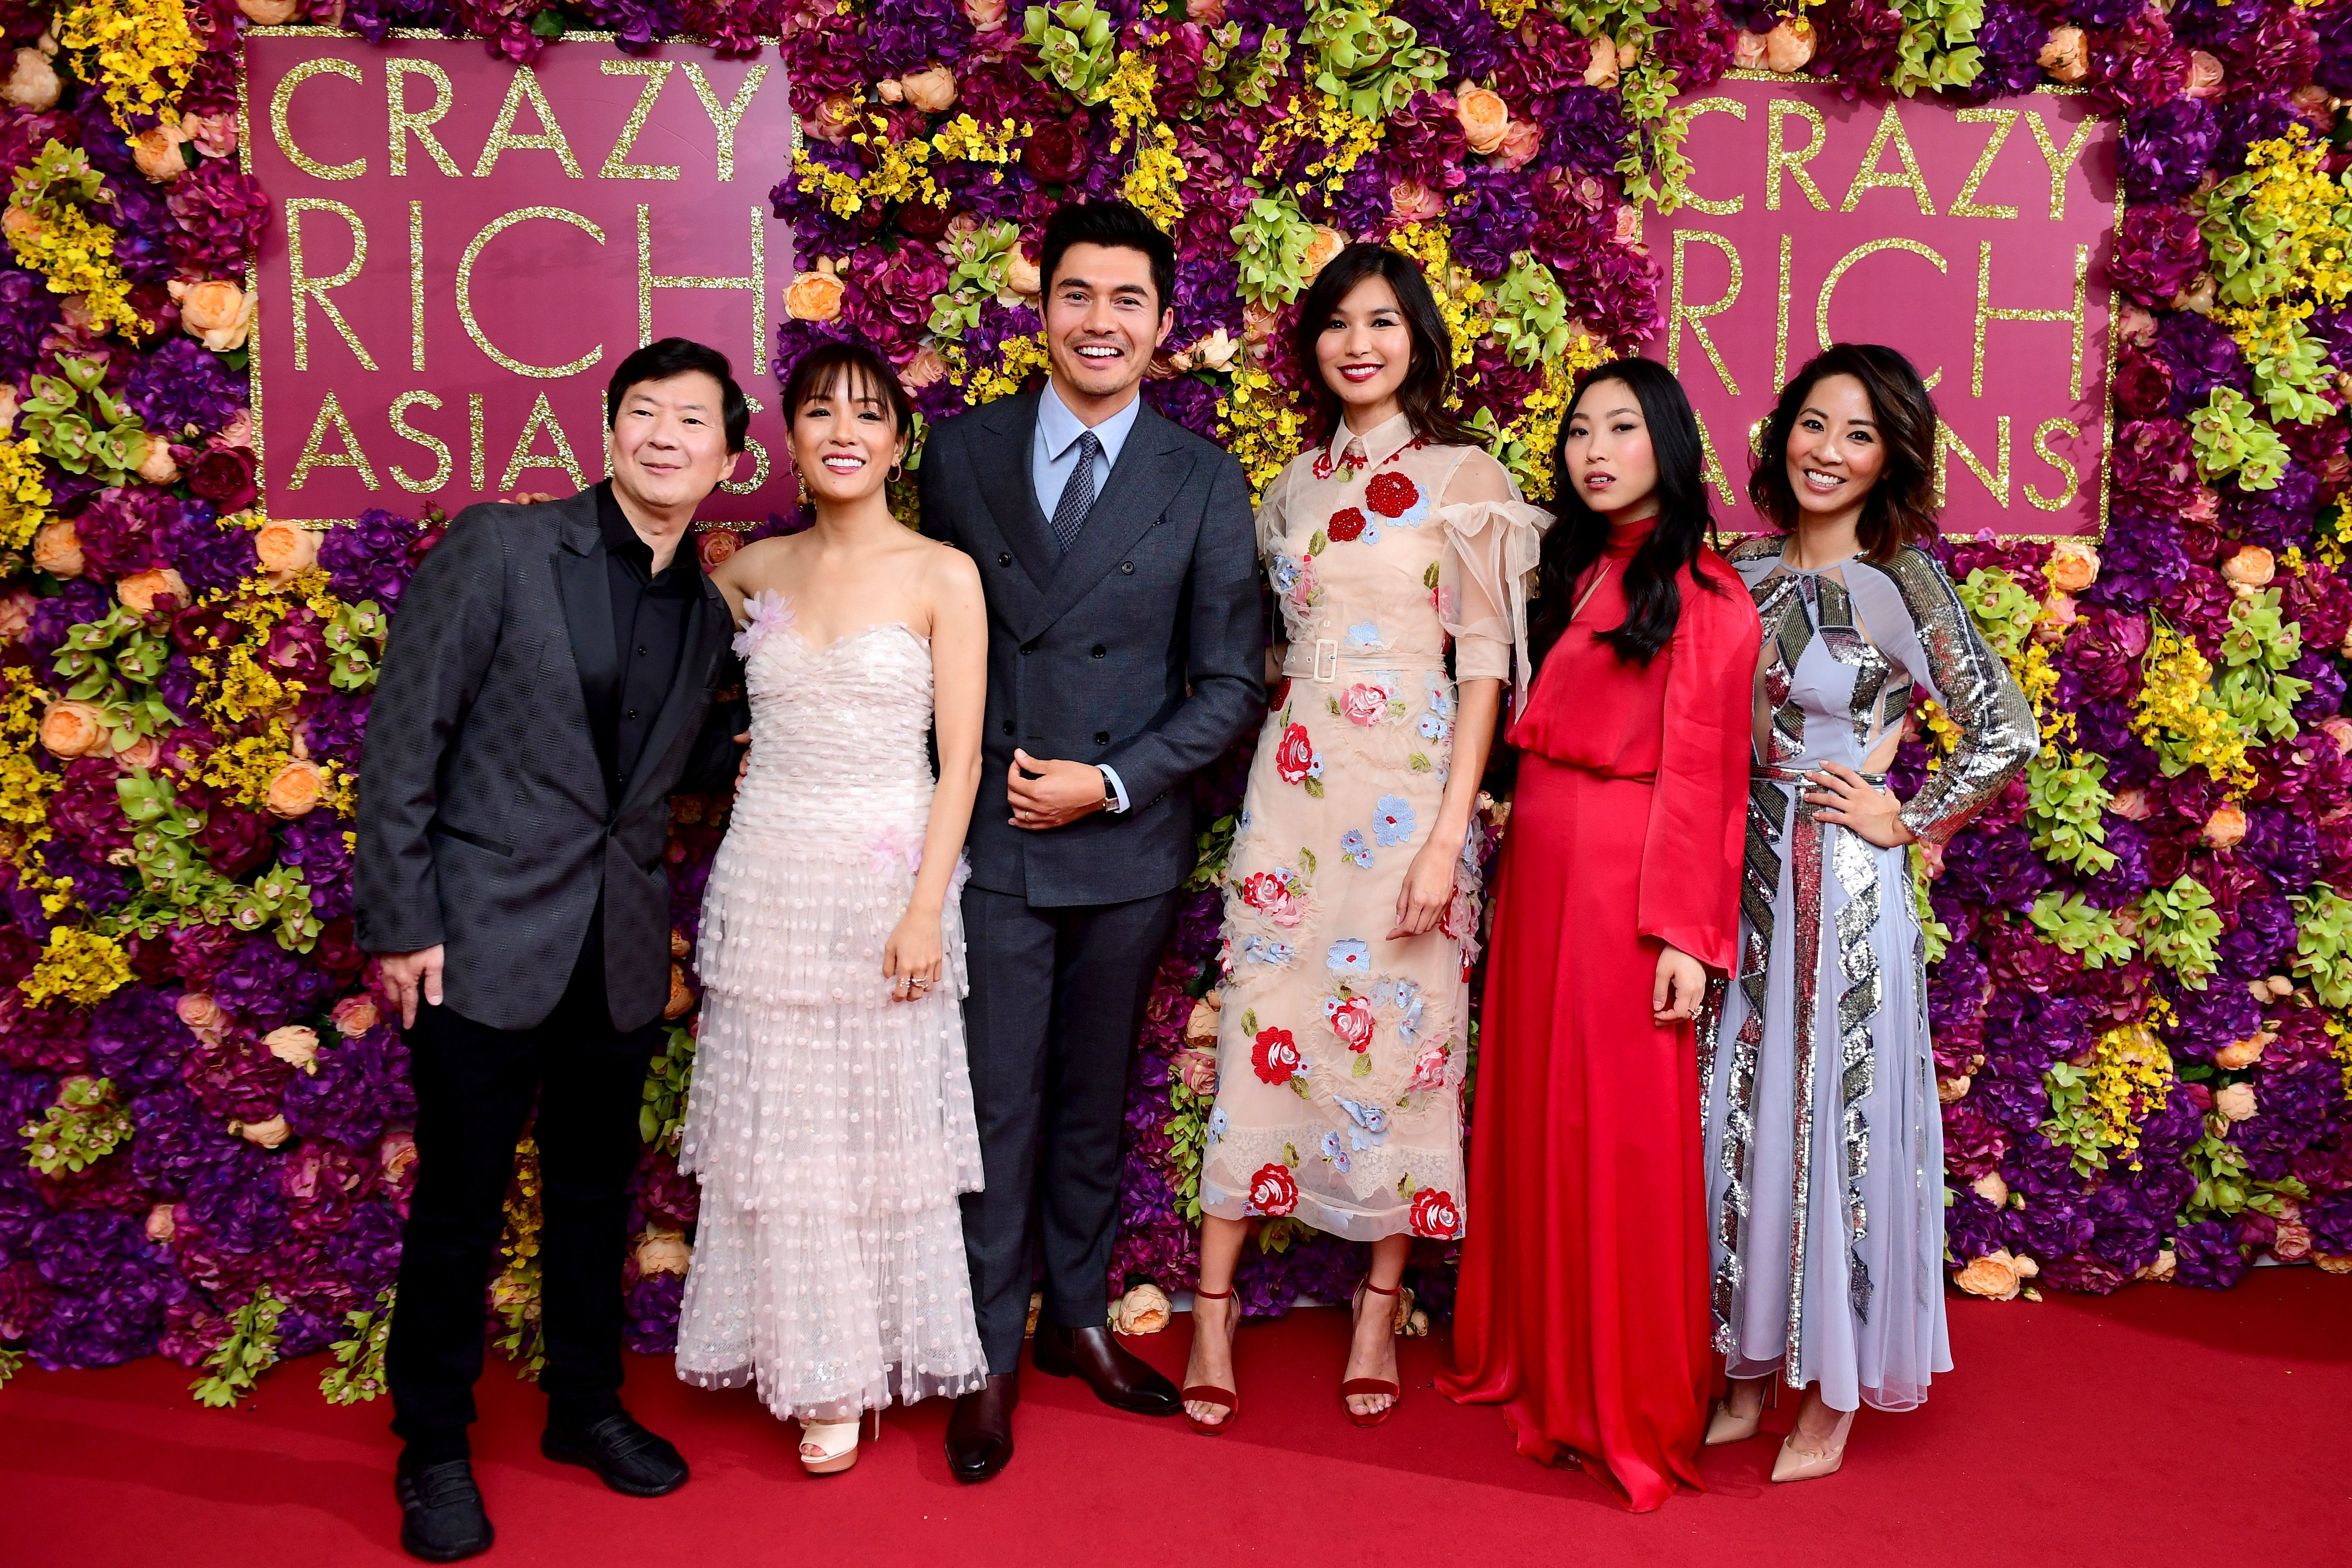 (From left to right) Ken Jeong, Constance Wu, Henry Golding, Gemma Chan, Awkwafina and Jing Lusi attending the Crazy Rich Asians Premiere held at Ham Yard Hotel, London. (Photo by Ian West/PA Images via Getty Images)